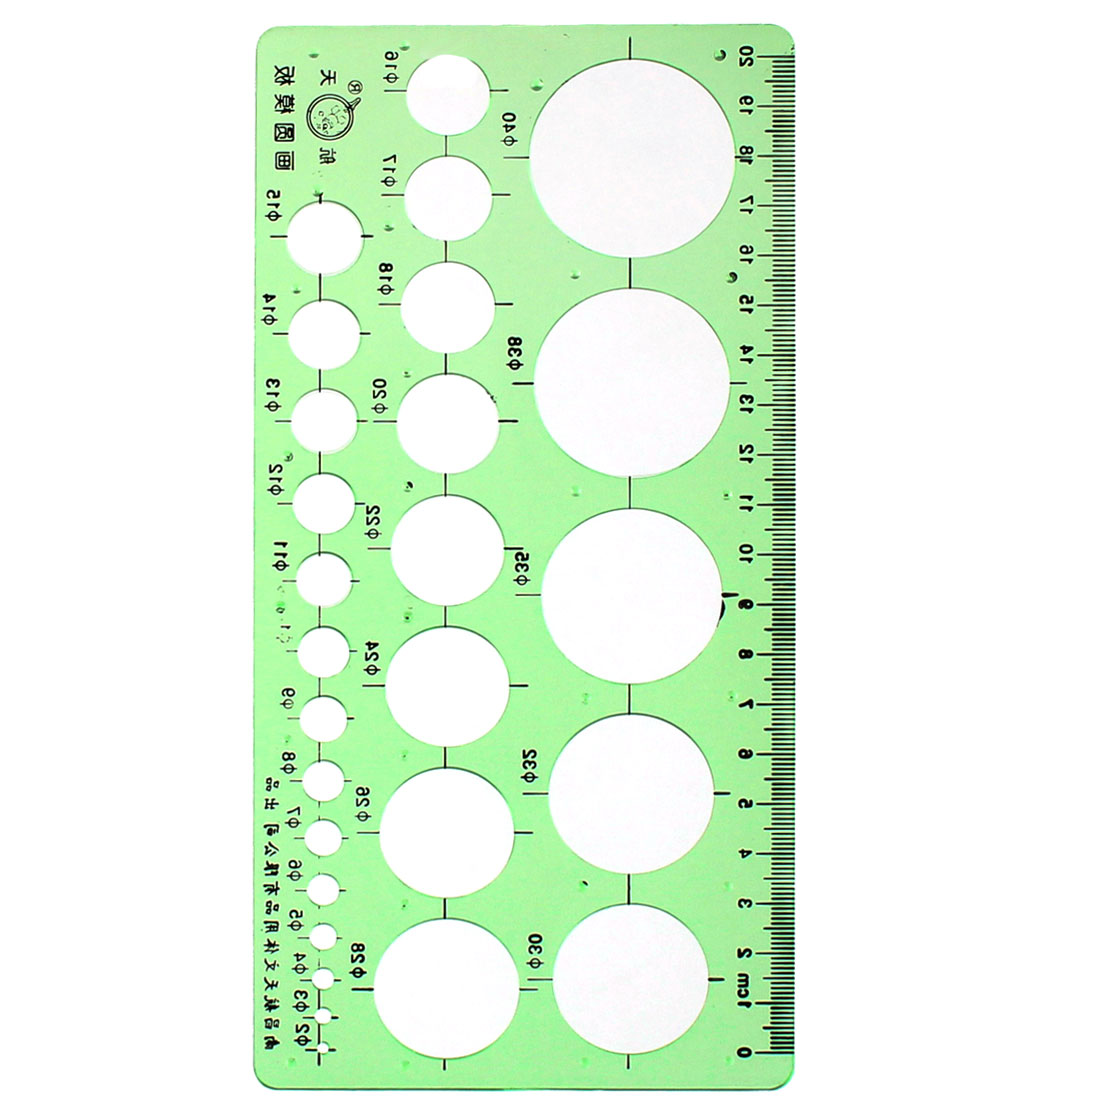 2mm-40mm Diameter Range Circles Measuring Drawing Stencil Template Ruler